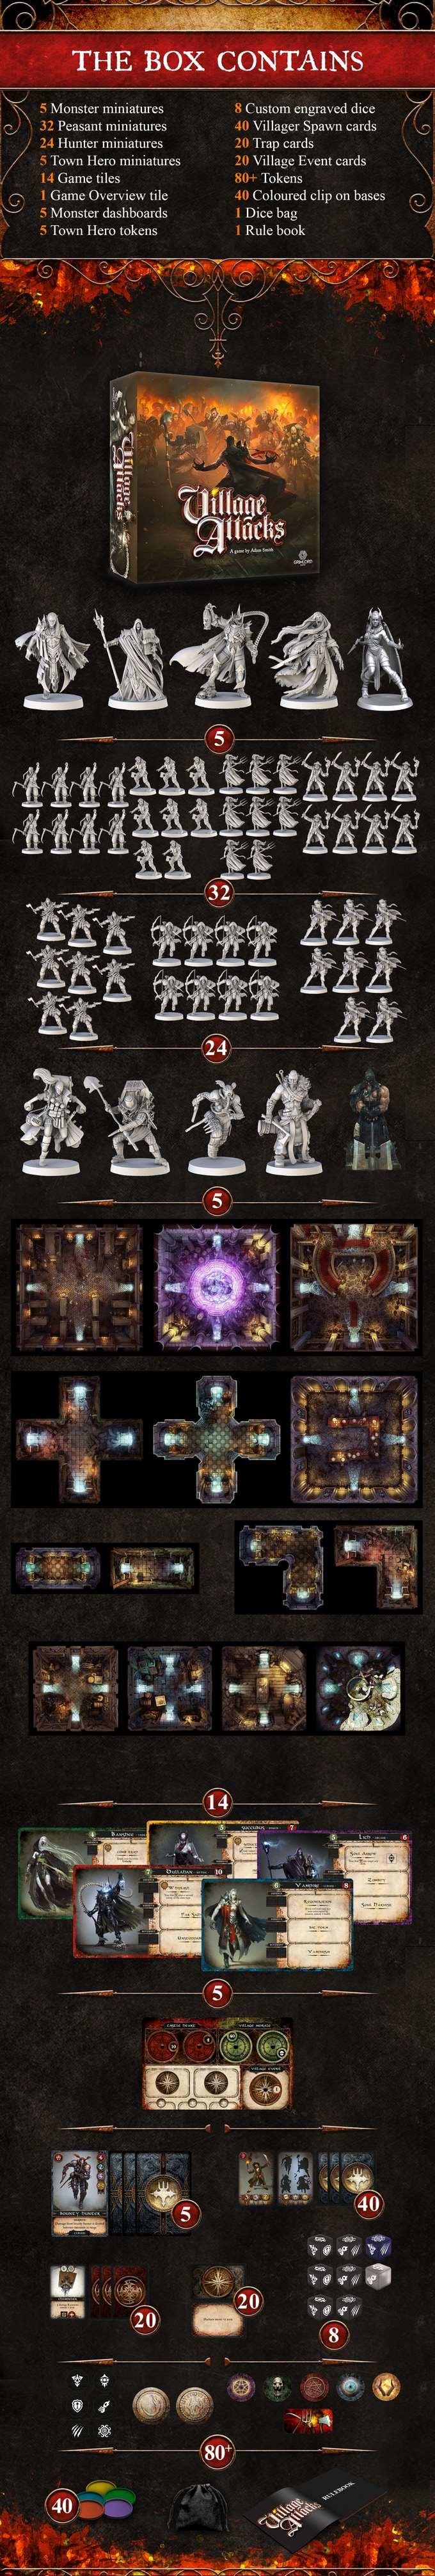 Core Game Contents